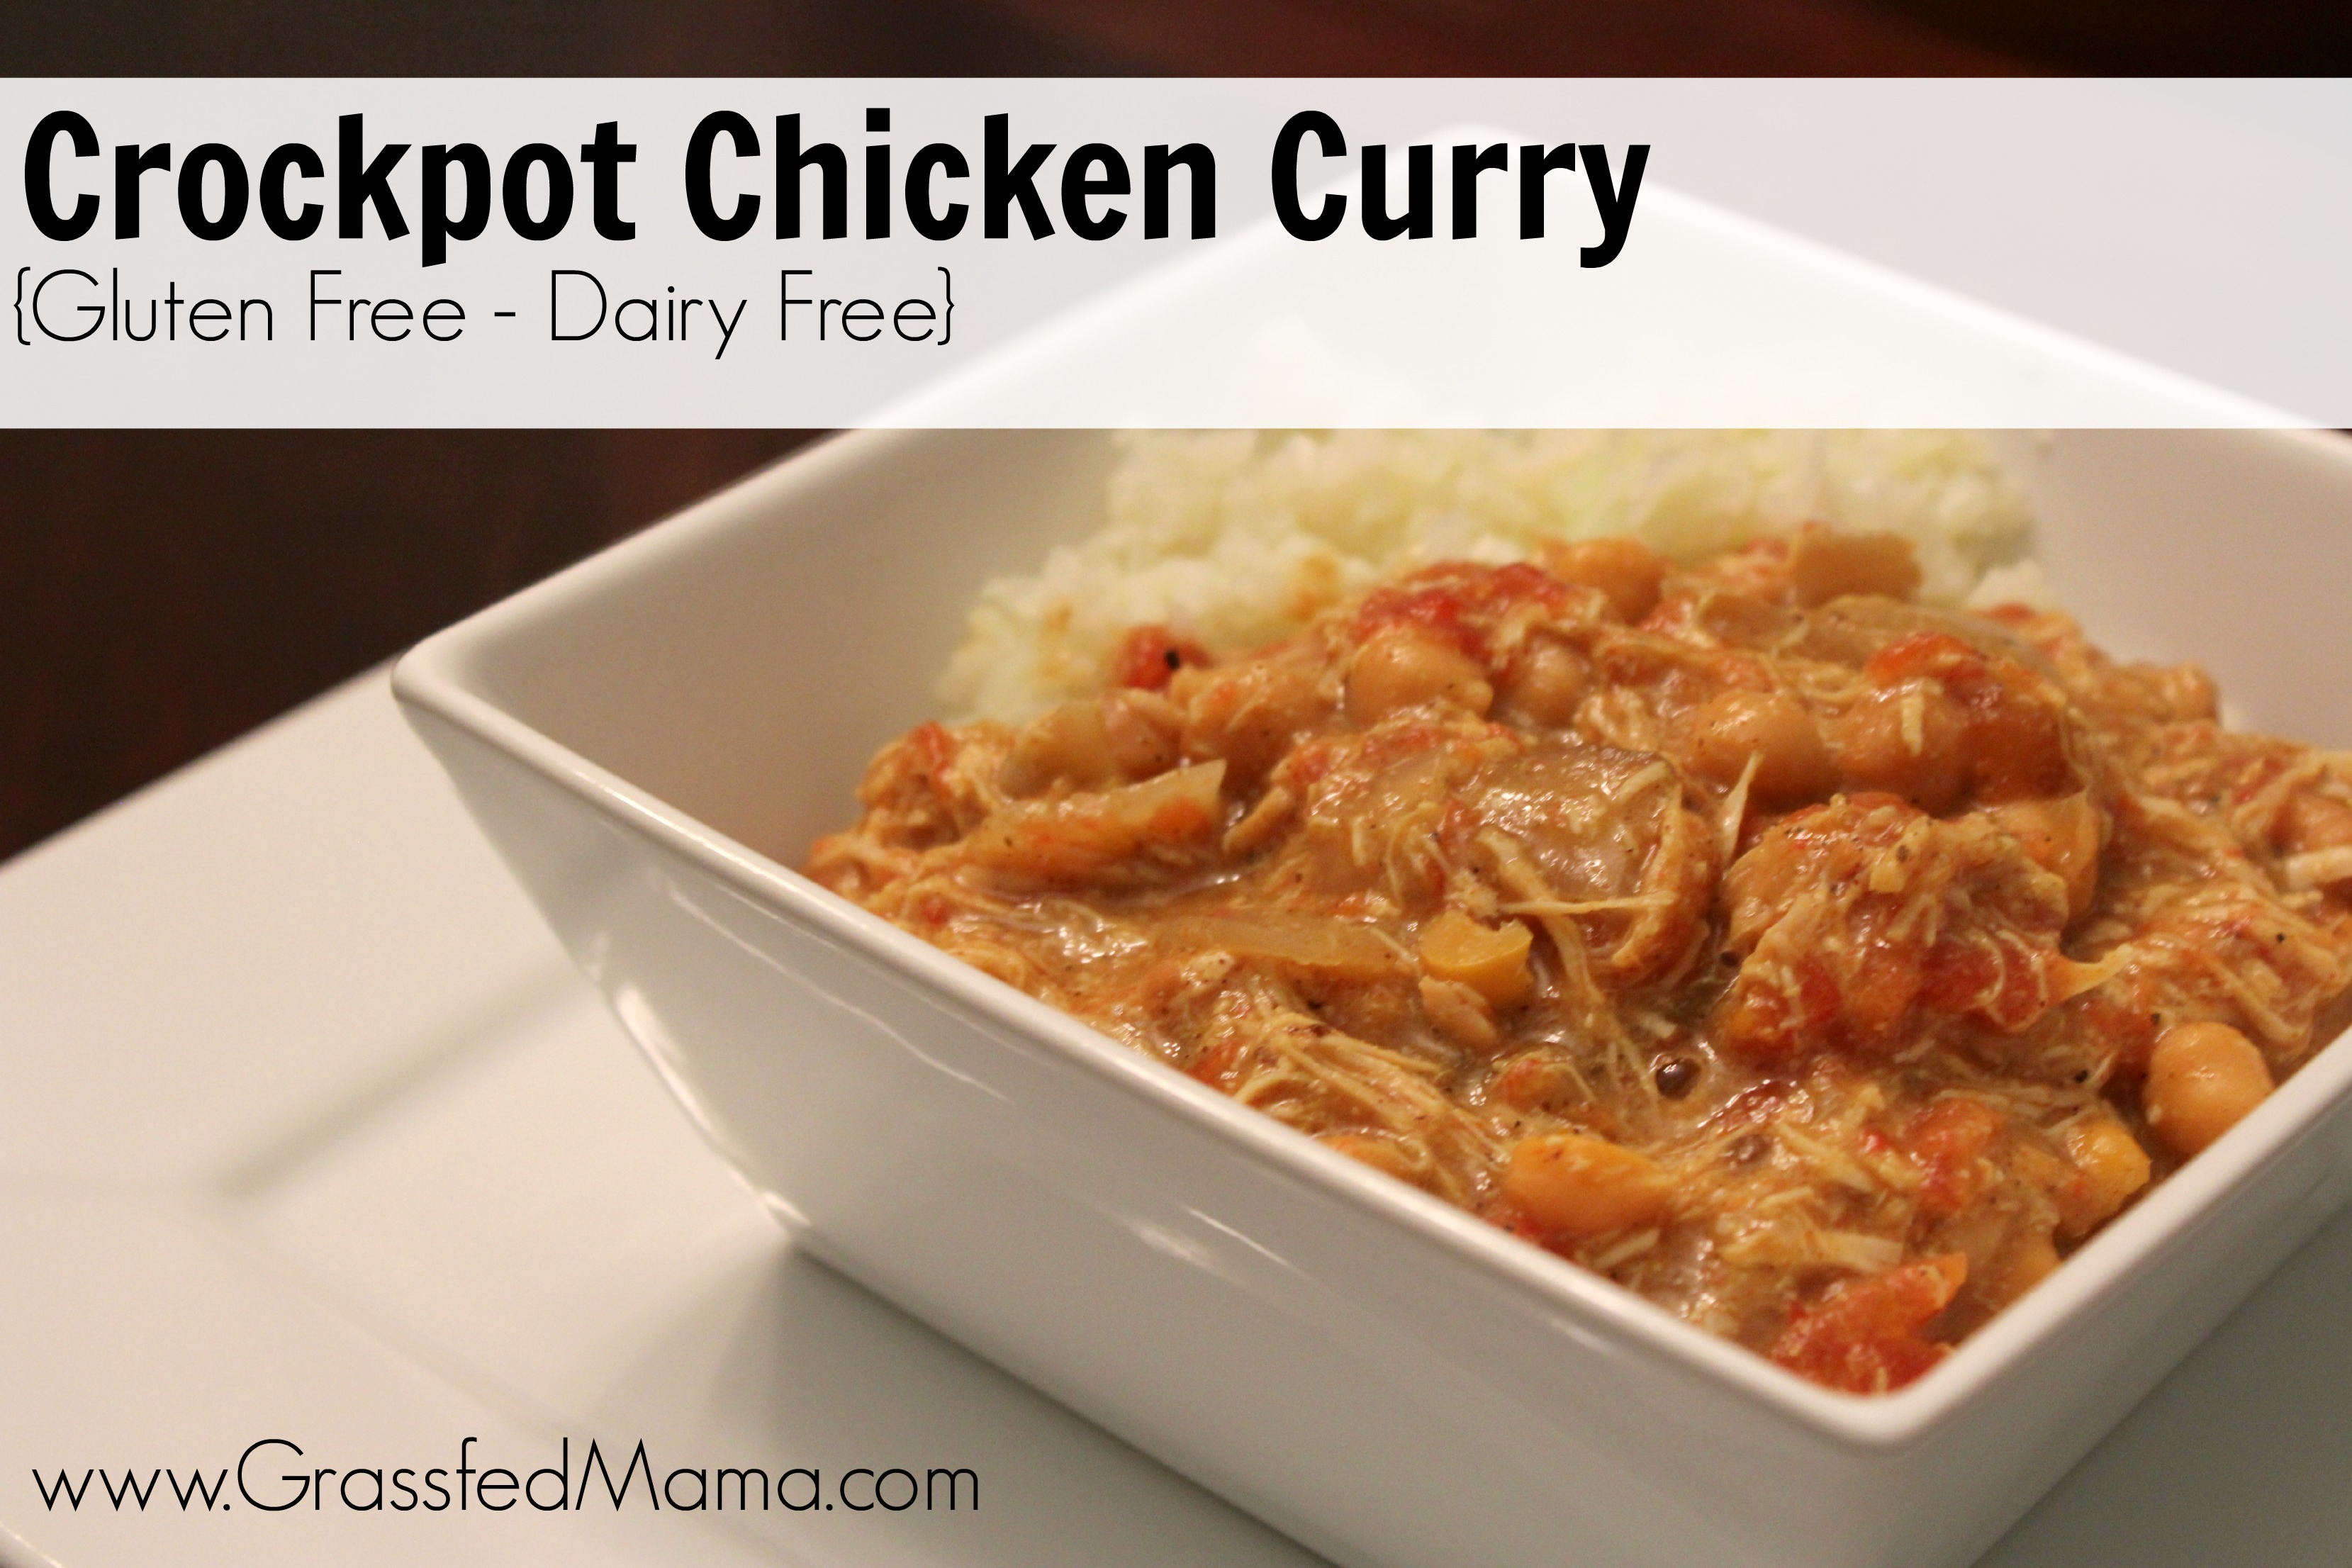 low fat curry, crockpot chicken curry dinner, easy crockpot meals, easy chicken curry, easy chicken dinner